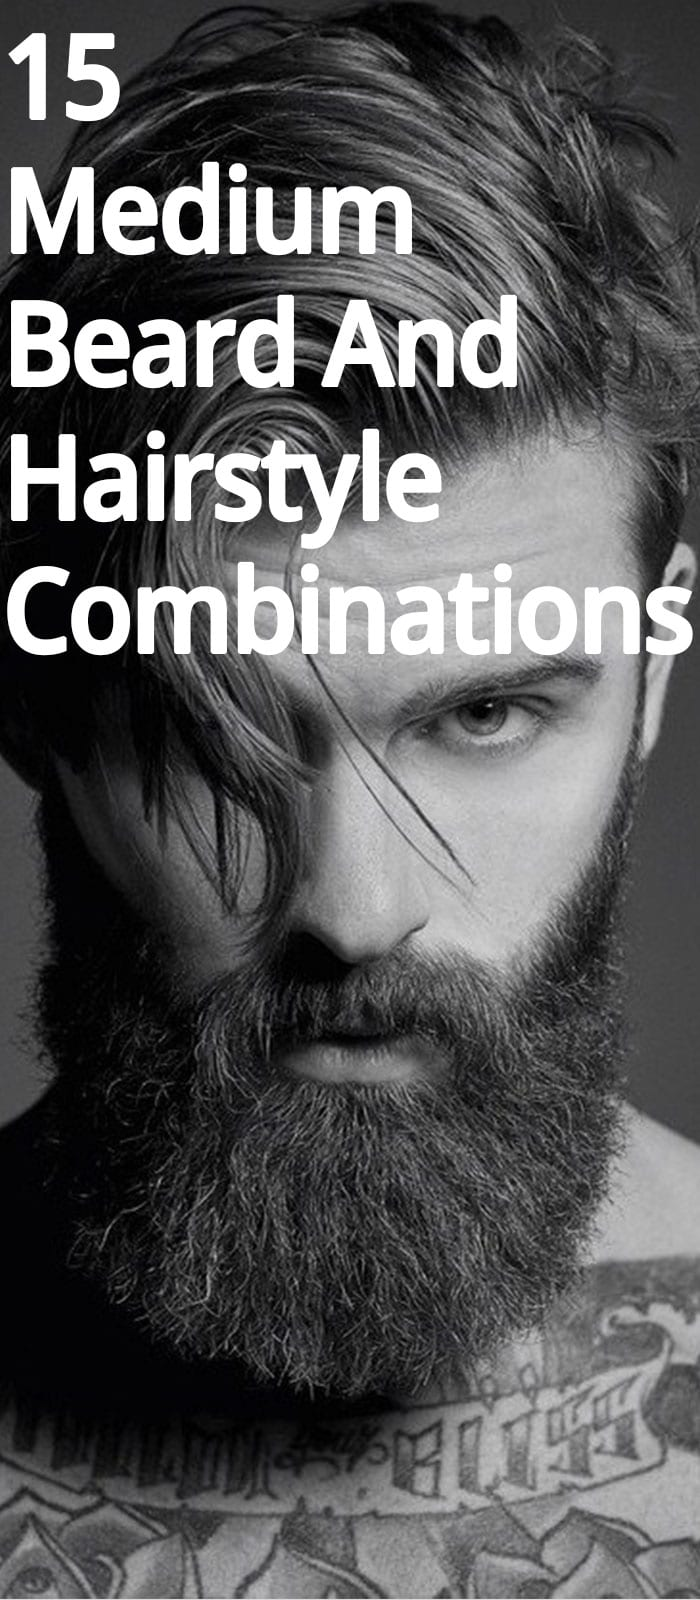 15 Medium Beard And Hairstyle Combinations Men Should Opt For!